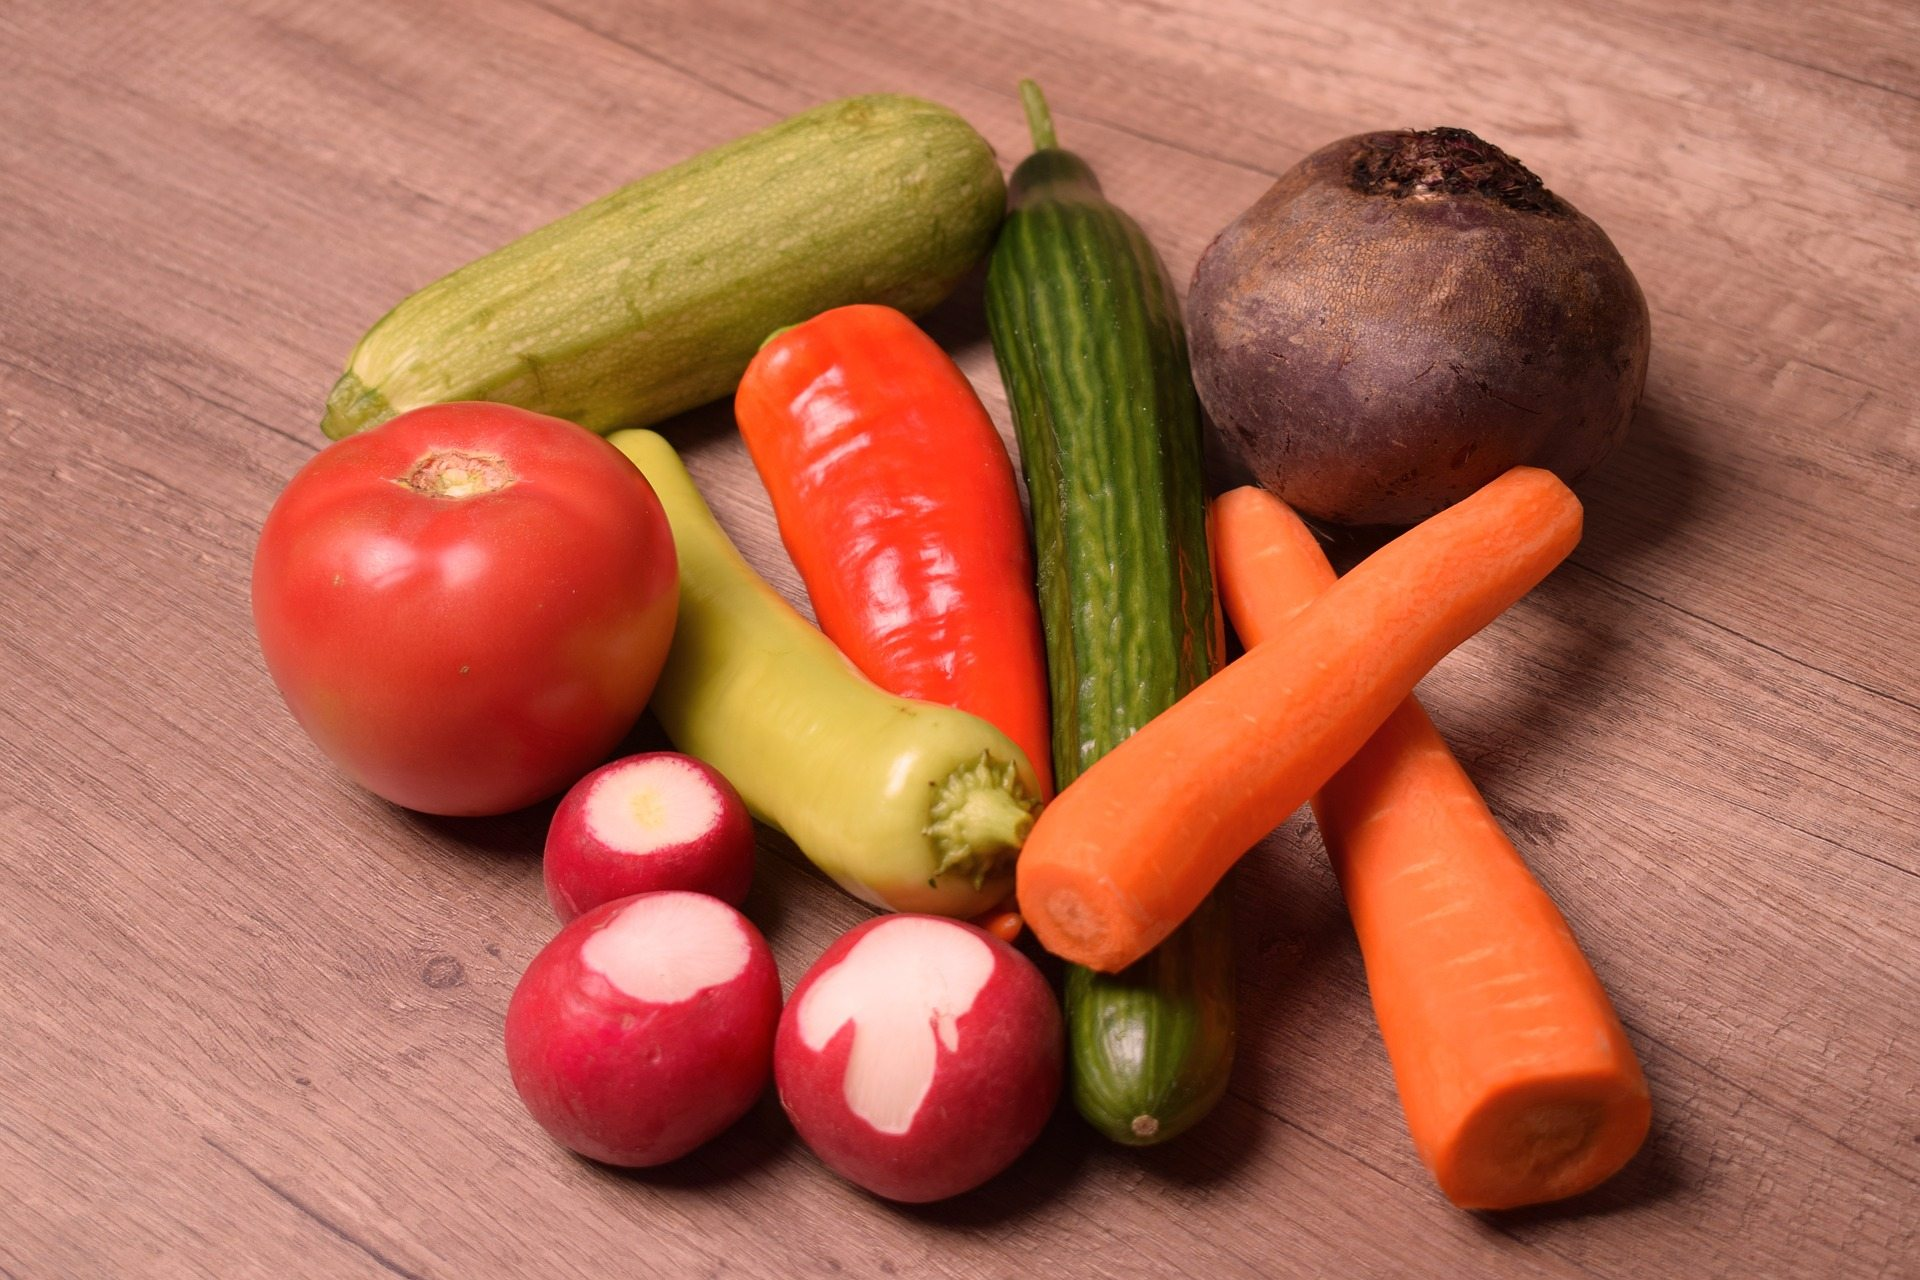 Top 40 Bachelor's Degree Programs in Nutrition - DegreeQuery com